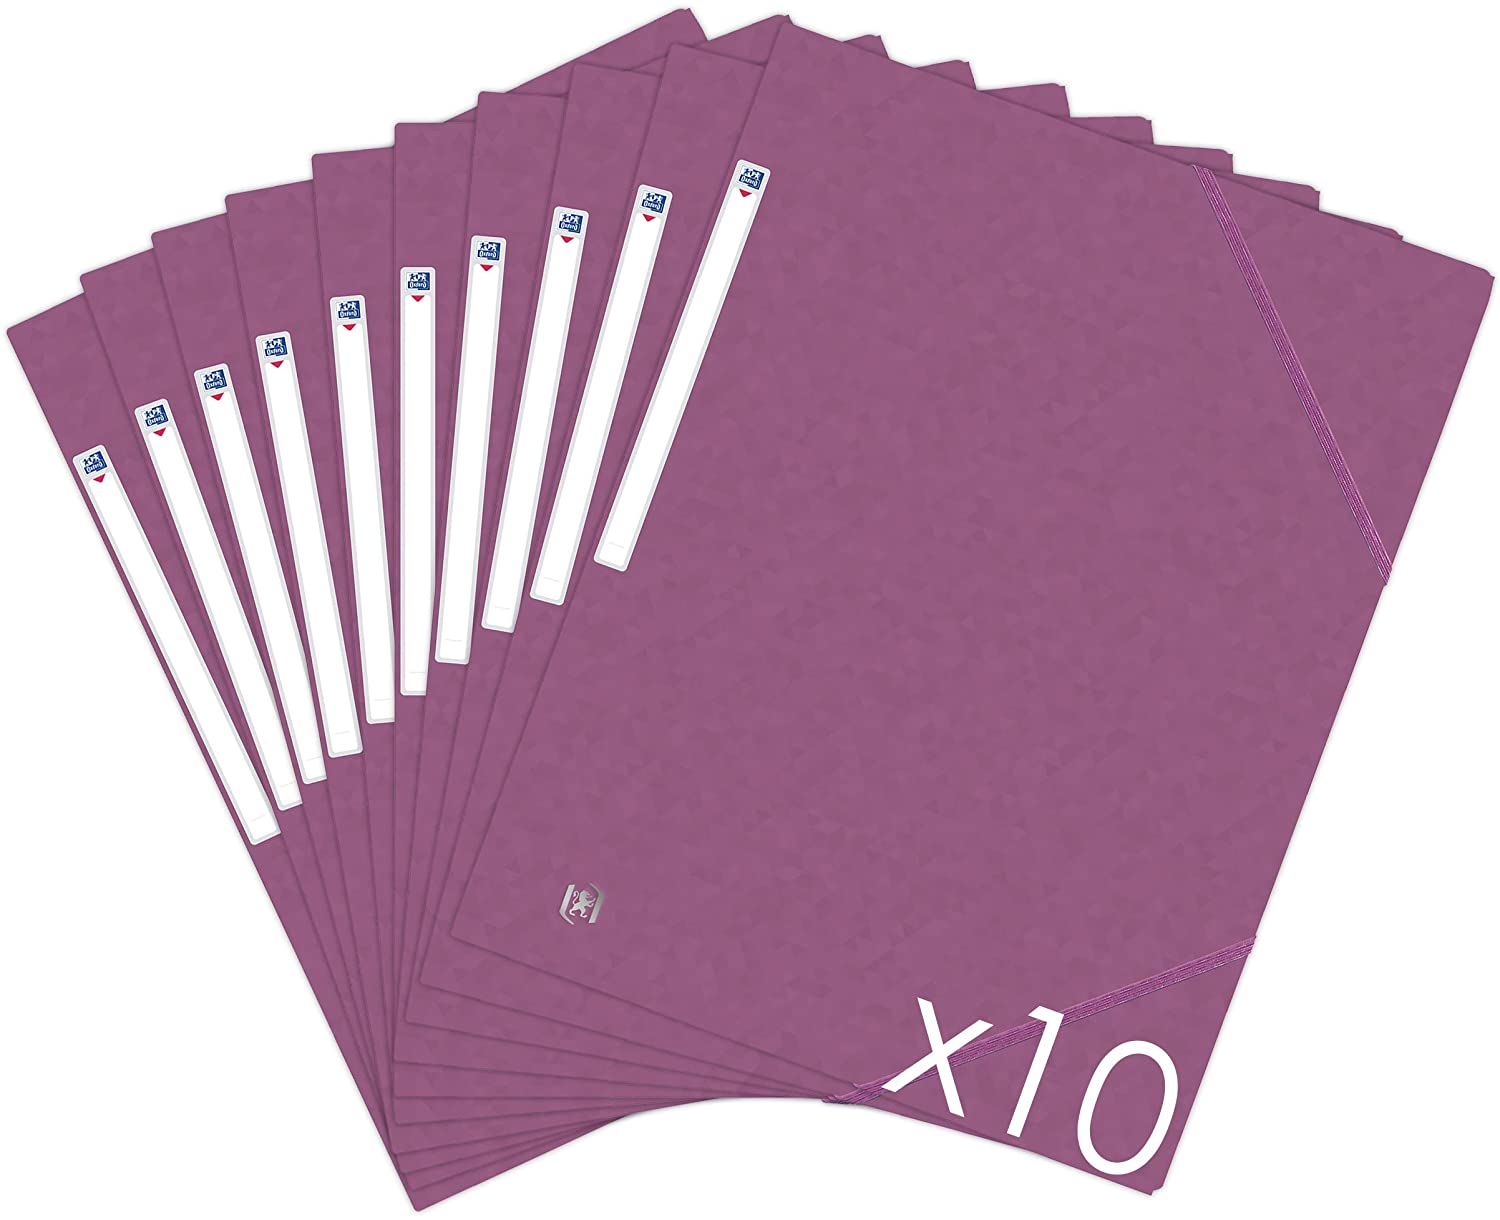 Oxford Topfile+ Pack of 10 Cardboard Folders with 3 Flaps - A4 Format with Elastic Closure - Pockets - Plum Colour